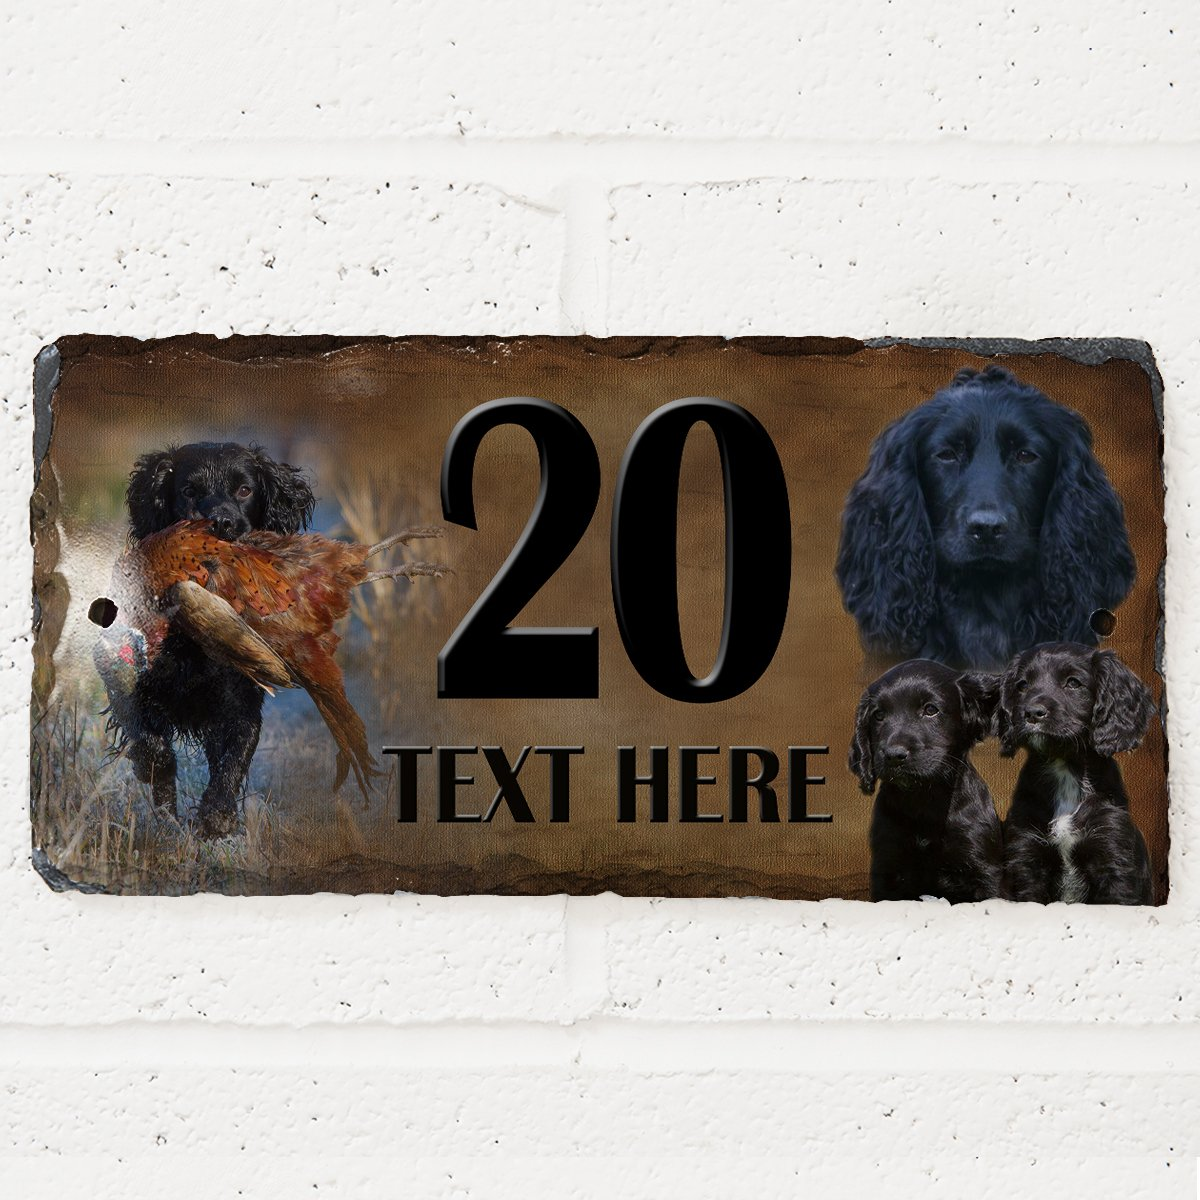 Black Cocker Spaniel Dog House Slate Personalised Name Number Gate Plaque KRAFTYGIFTS KHS09